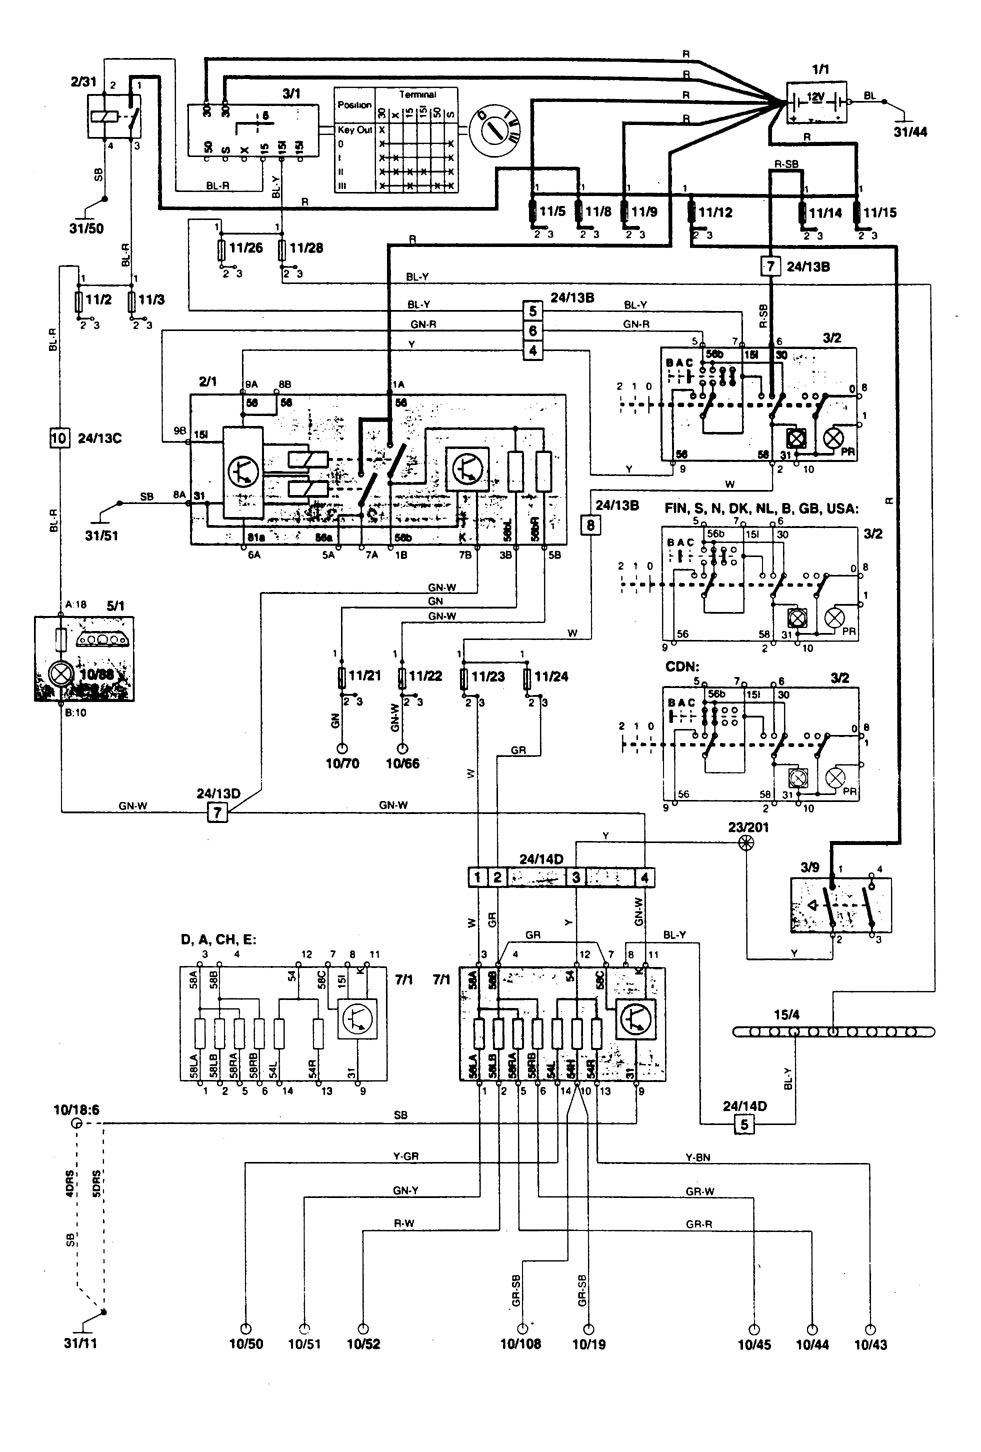 Volvo 850 1996 Seat Wiring Electrical Diagram Dodge Omni Image Engine